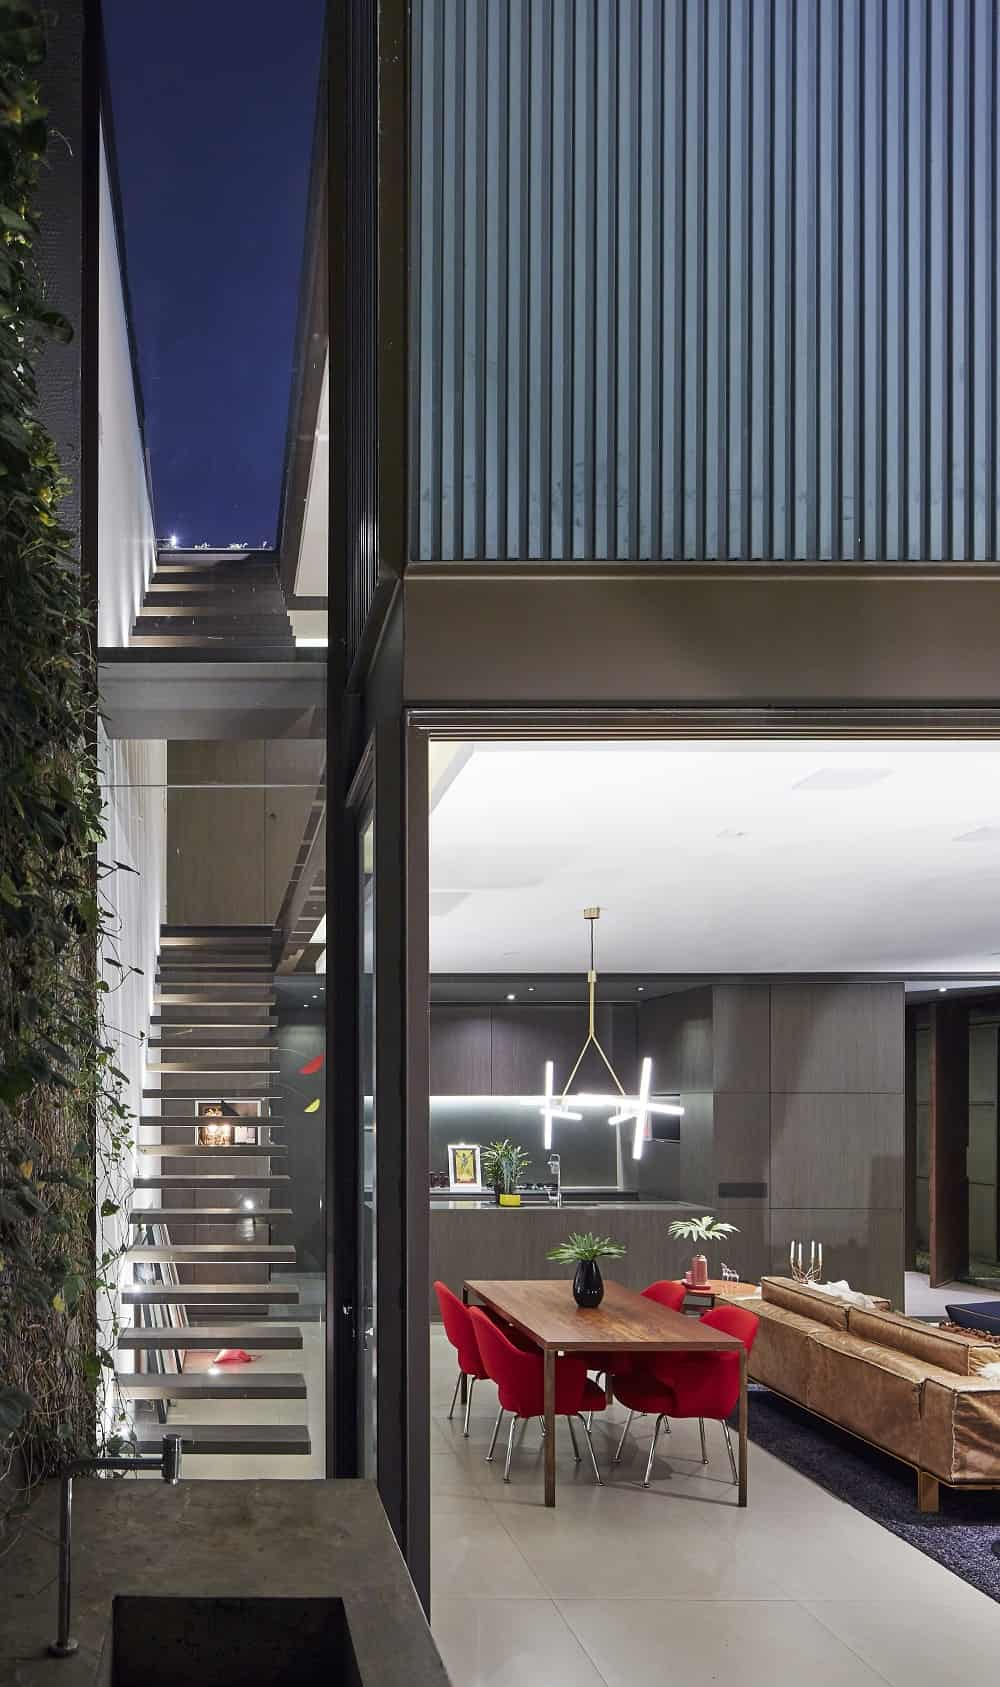 Dining area and kitchen beside the floating staircase in the Casa Box designed by Flavio Castro.